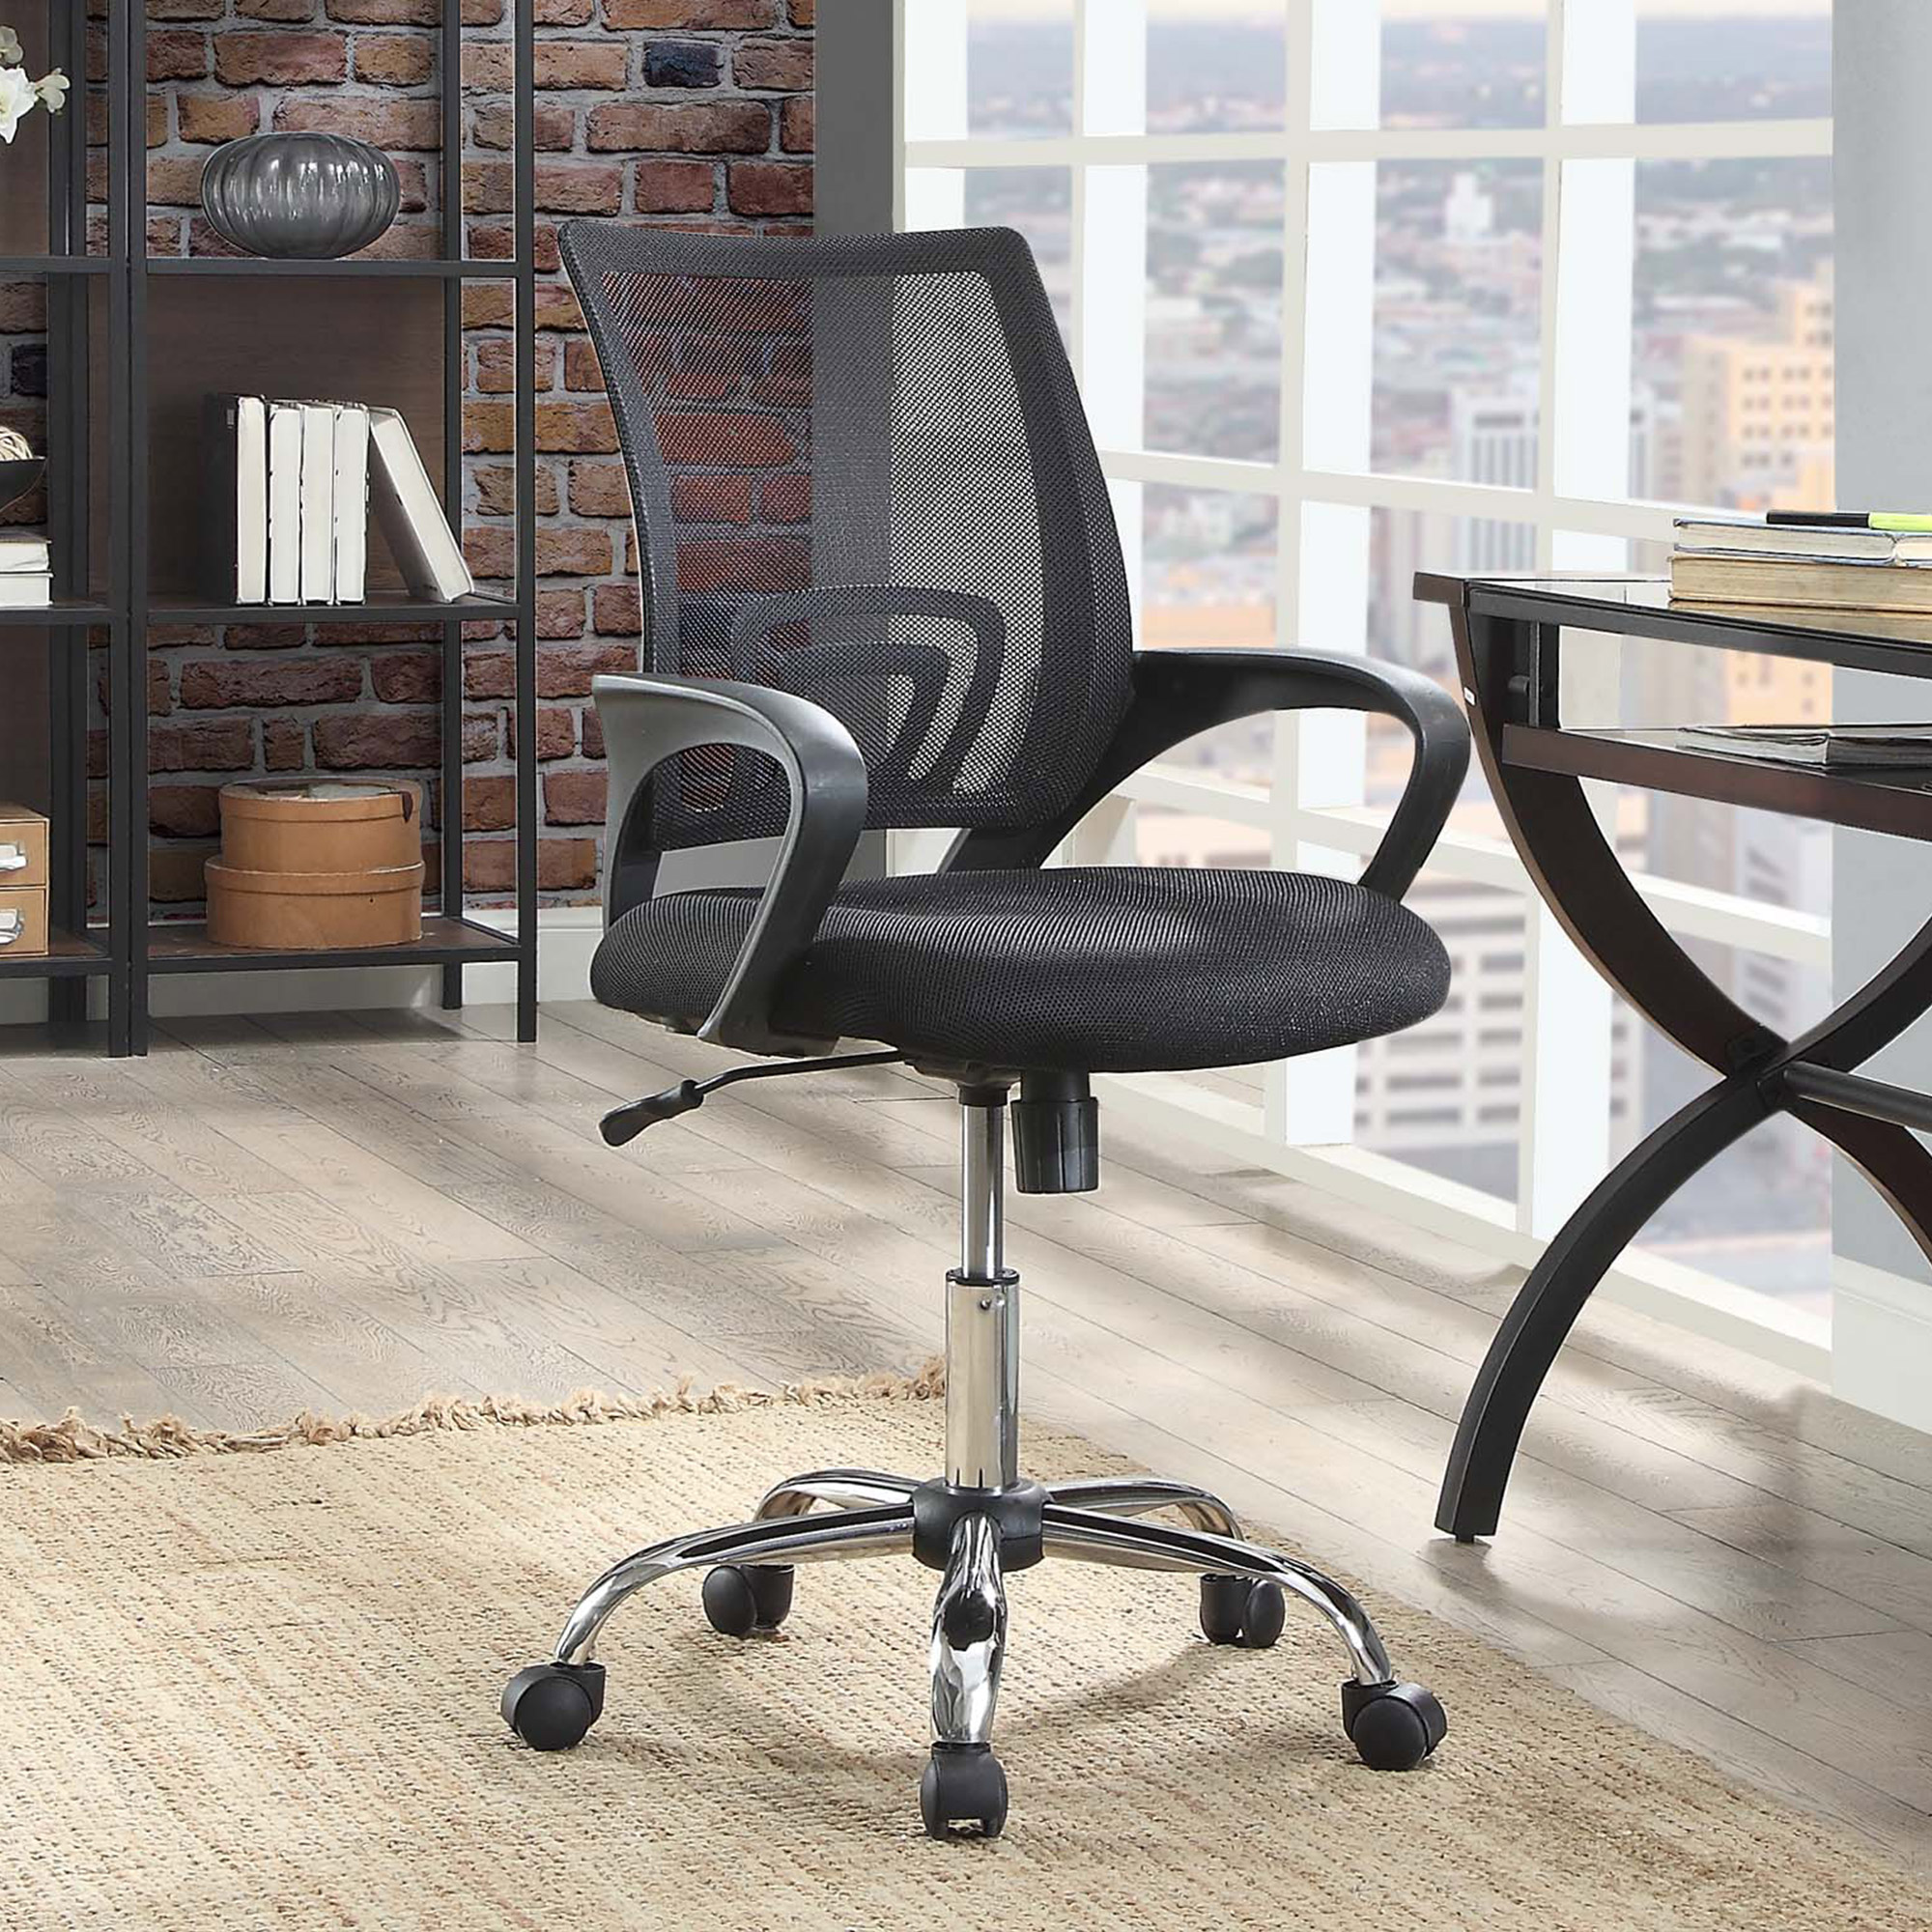 Office Desk Chair W/Arms Mesh-Back Adjust-Height 5-Casters